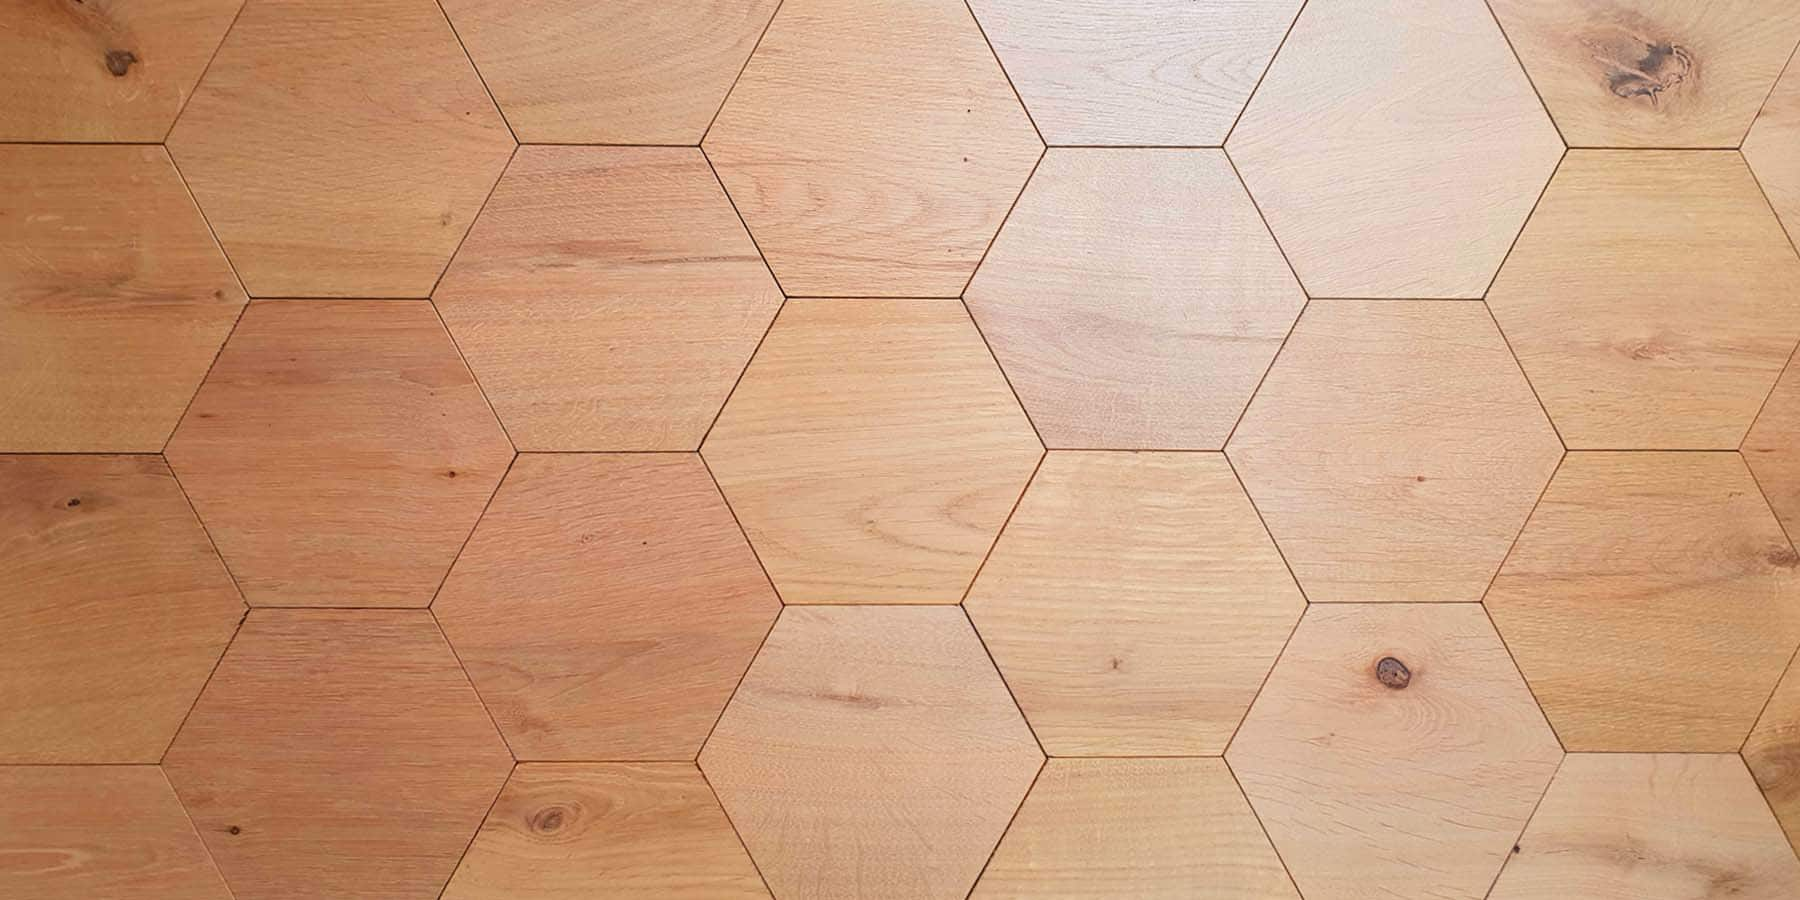 English Honeycomb Hexagon